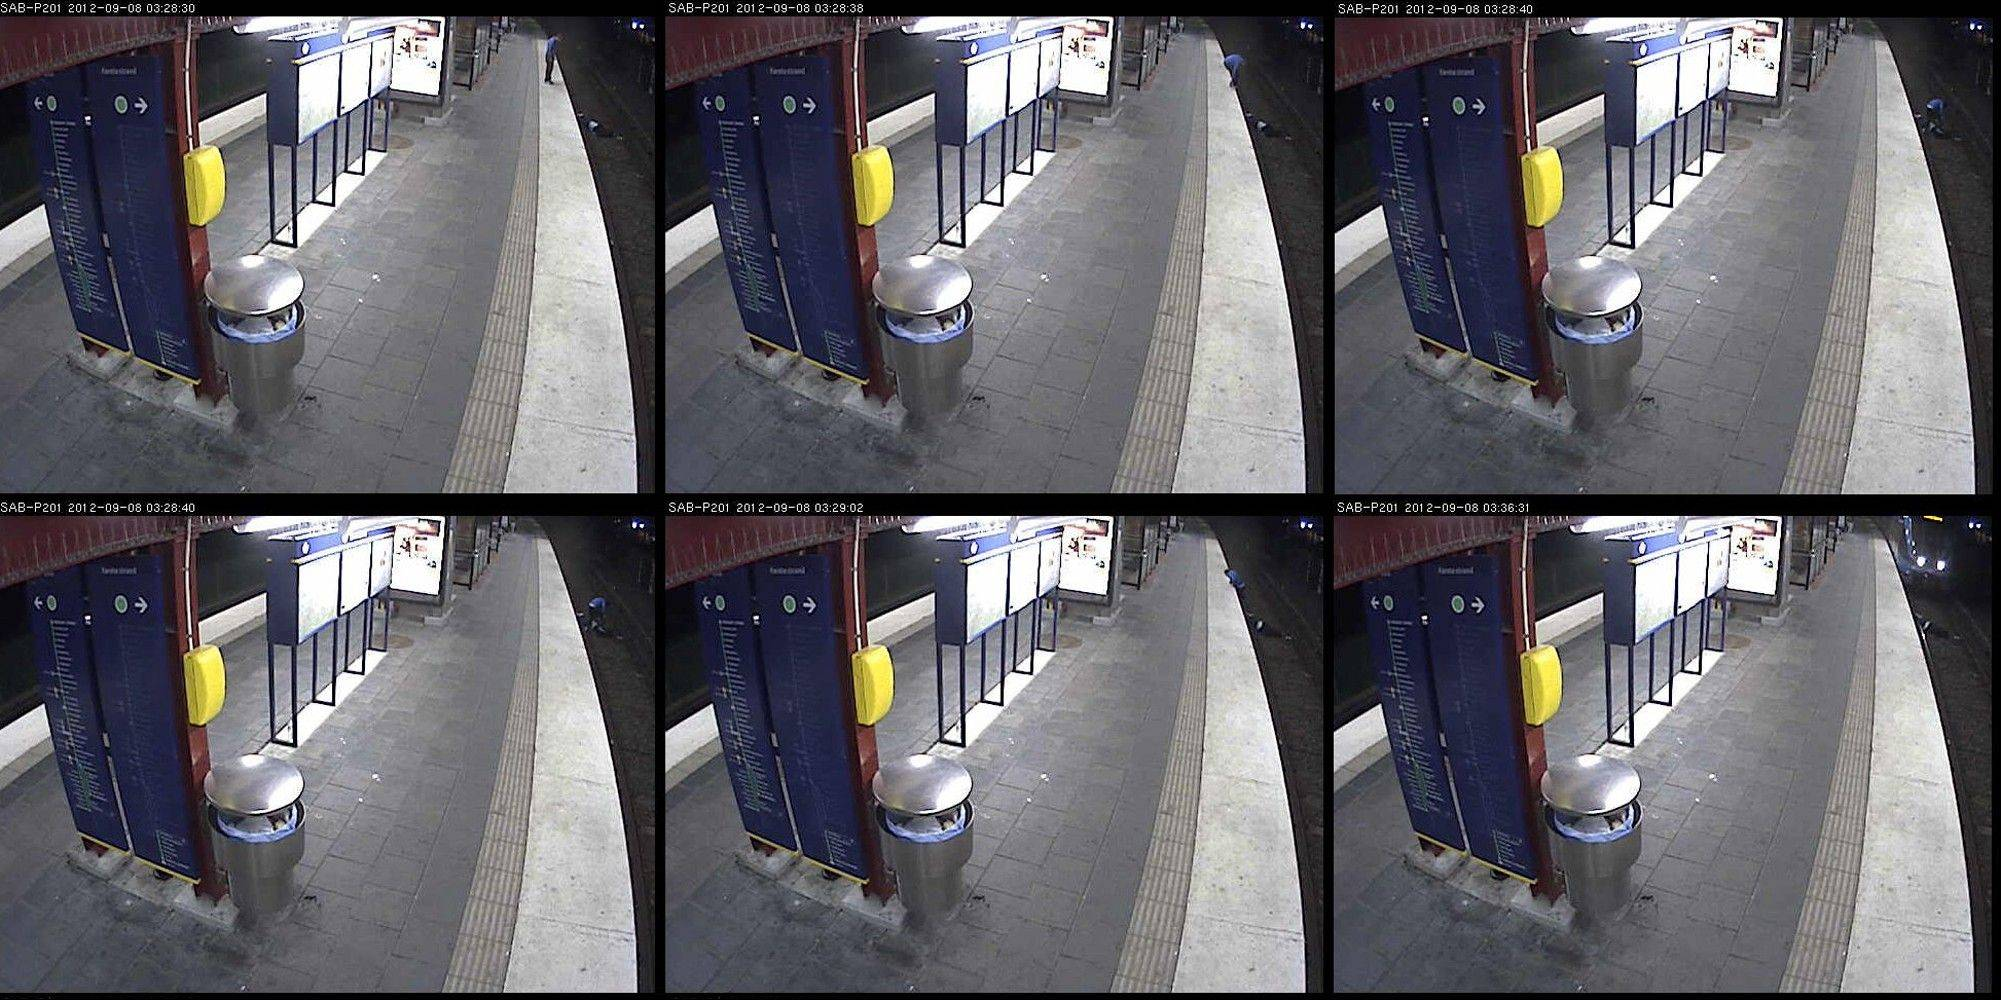 A composite image from September 8 CCTV footage made available by Swedish Police on Wednesday, Sept. 12, 2012, shows the victim, returning home after a drunken night on the town, falling down on the tracks at Sandsborg metro station south of Stockholm. He was then robbed and left to be run over by an oncoming train. The man survived, sustaining serious injuries.